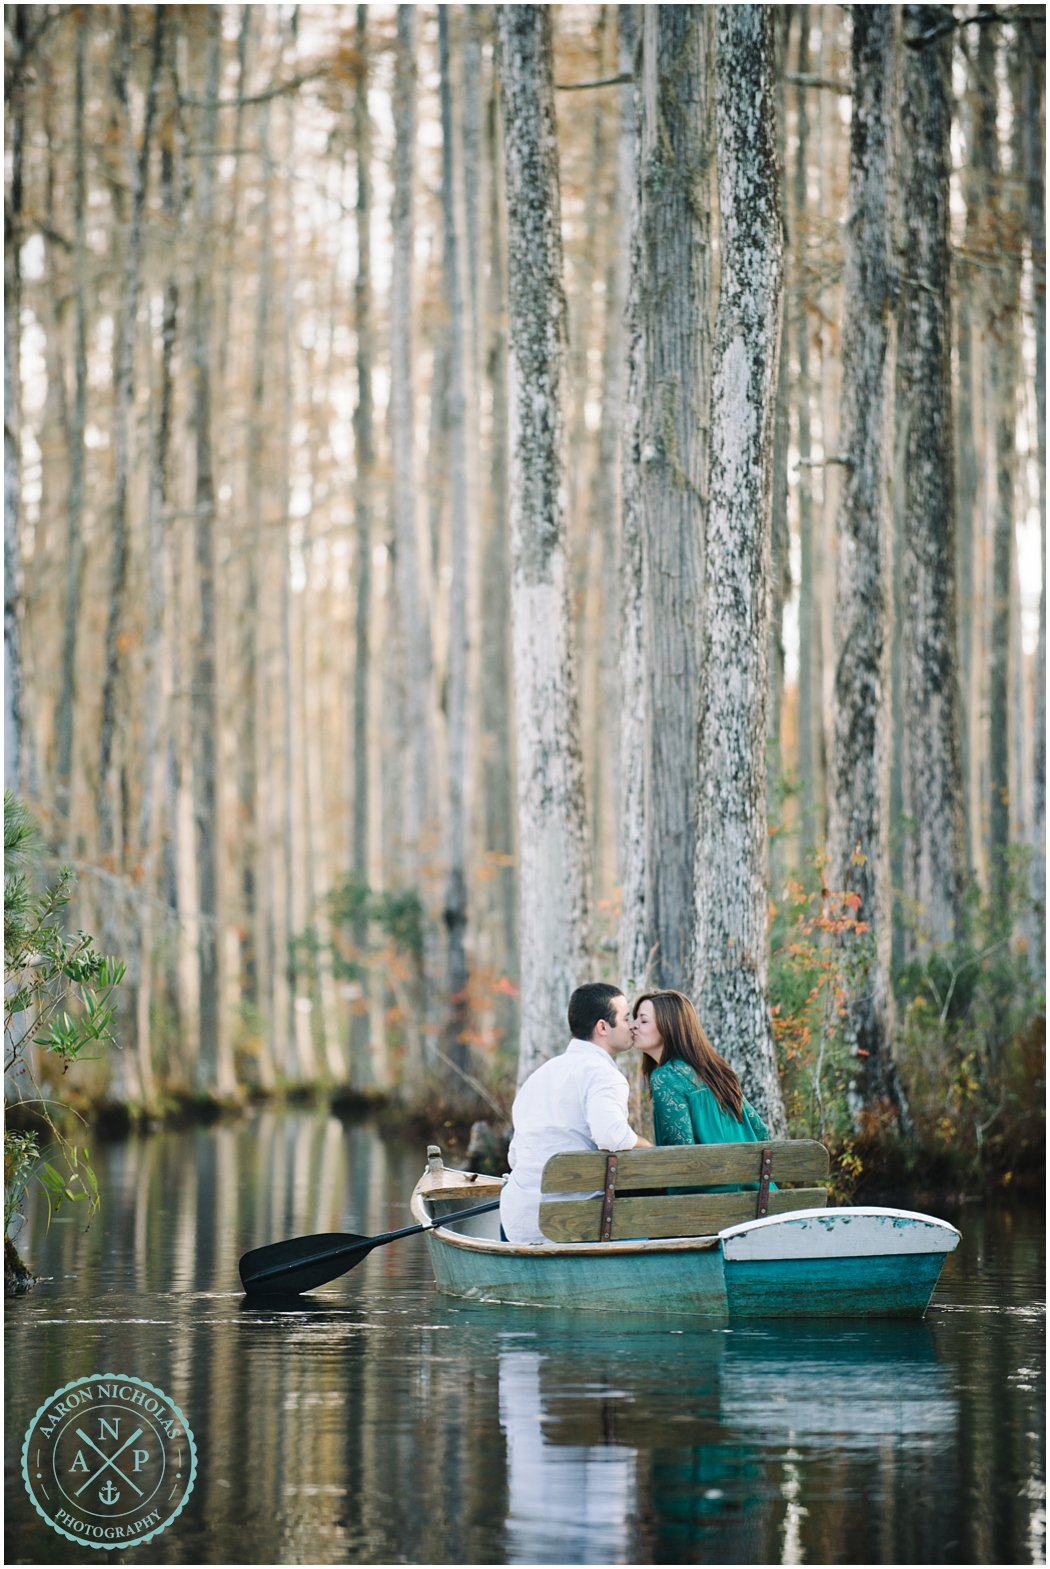 Cypress Gardens, Charleston, SC engagement session! - Photo by Aaron Nicholas Photography, destination wedding photographer based in Charleston, South Carolina